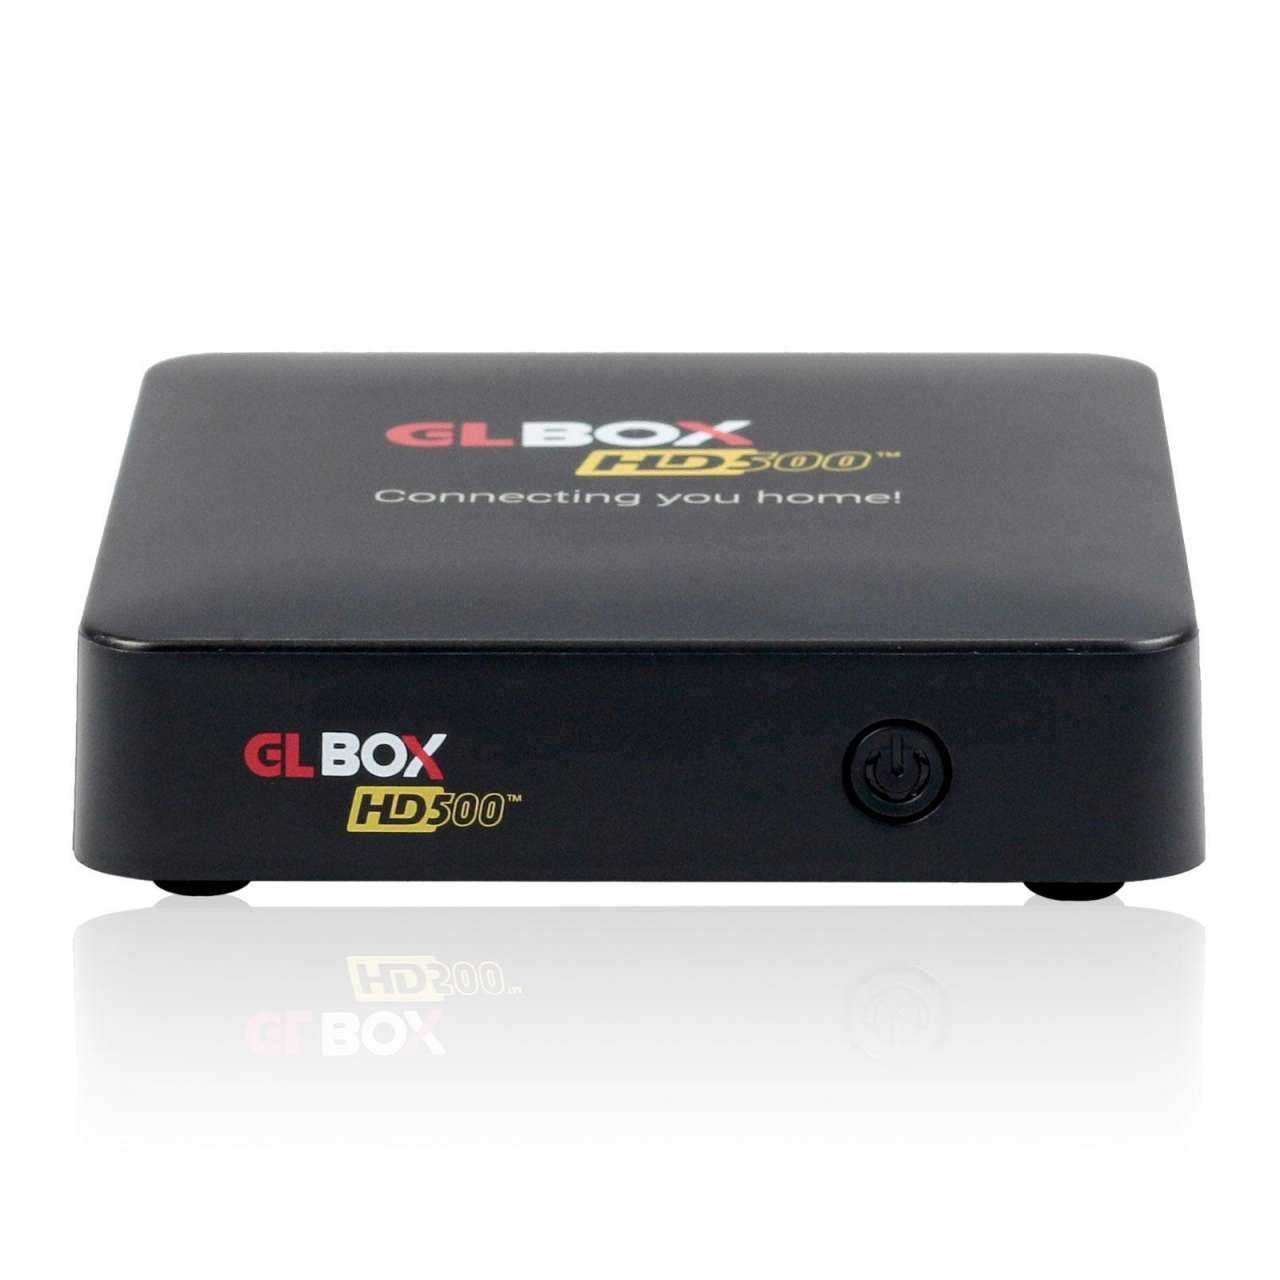 GLWIZ GLBOX HD500 4K UHD TV IP Dual Wlan Unlimited Türkisch Persisch Arabisch Kurdisch ohne Abo RECGLB003